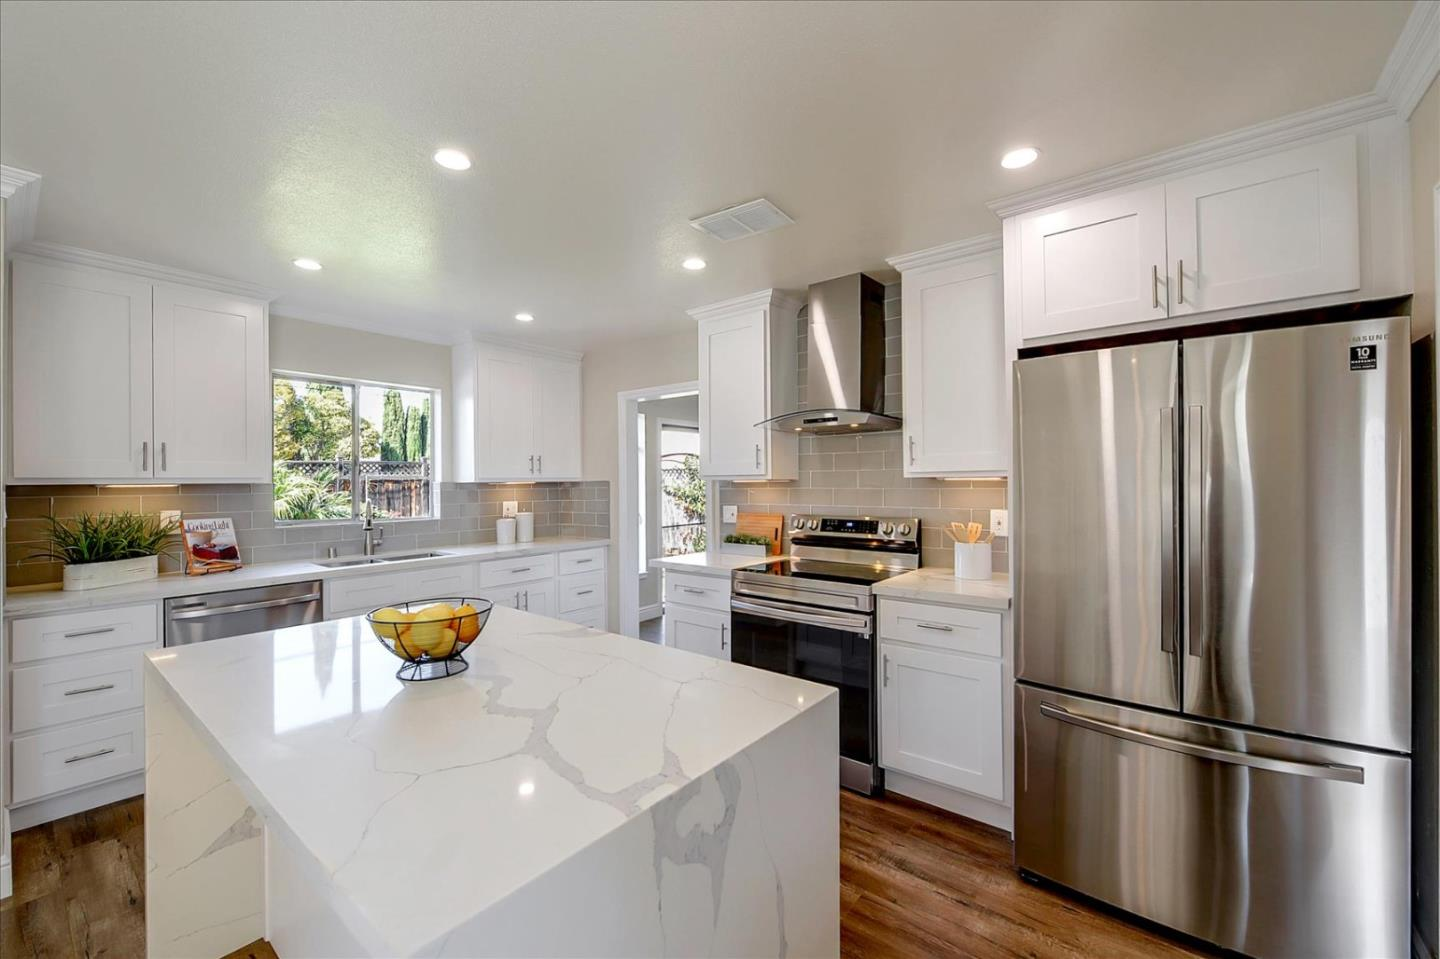 Wow! This is it! This elegantly remodeled Willow Glen home, has much to offer! This 3 bed 2 bath home with nearly 1700 sf features a spacious, remodeled kitchen with brand new kitchen cabinets, new stainless steel appliances, new quartz, with a waterfall finish, and a subway tile backsplash.  It also has a brand new 30 year composition roof! The home also has new laminate floors throughout, with fresh paint on the interior and exterior. It has remodeled bathrooms with lighted mirrors, and new vanity cabinets. The home has new crown moulding, new baseboards, new recessed lighting, & new tile on the fireplace. There's too much to list! Due to a delay in delivery, the new double pane windows and double pane doors will be replaced as soon as those arrive. All windows, and glass sliding glass doors to be replaced with brand new ones. 888 Redbird Dr. just closed for $1,480,000. That home was smaller and had original materials on the fireplace, and the bathrooms weren't recently remodeled.